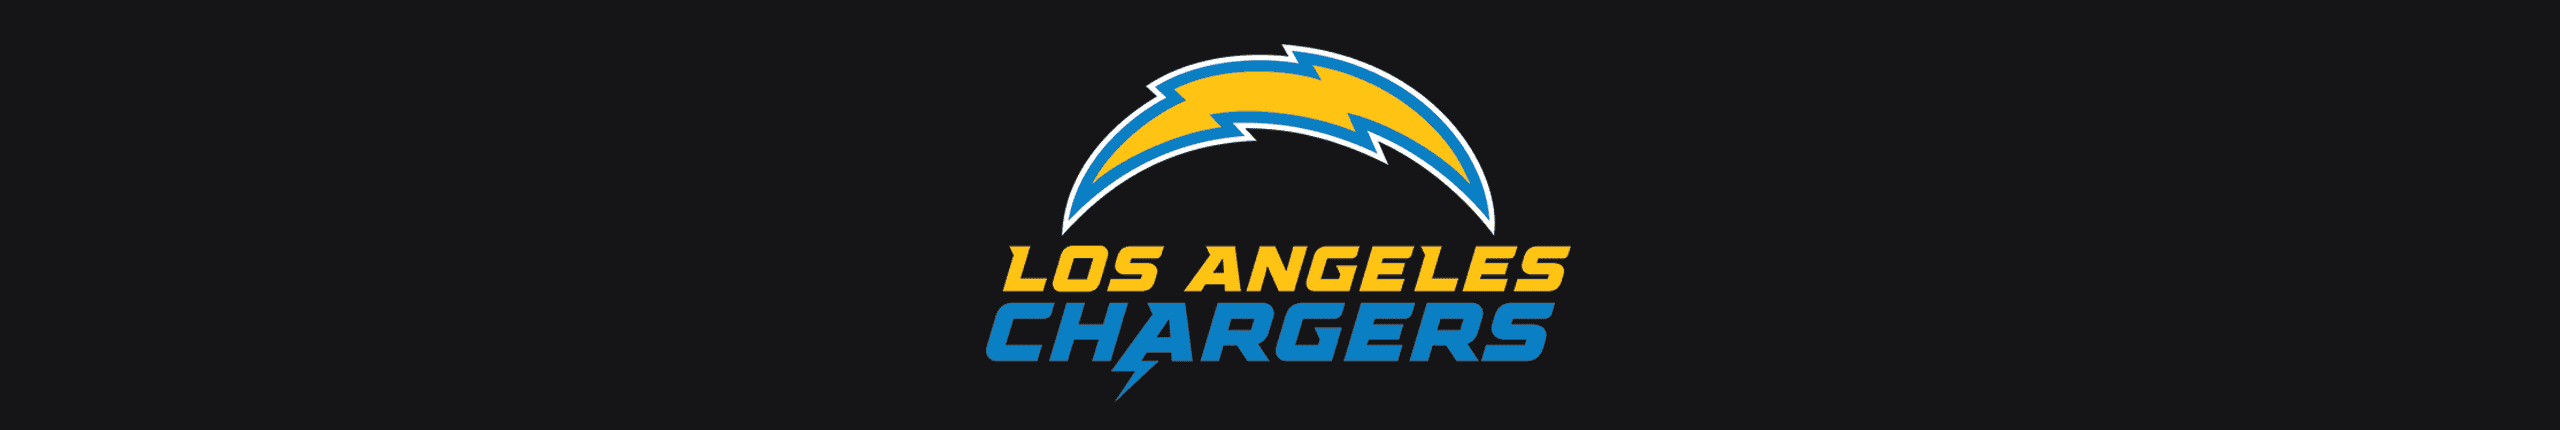 chargers-hero.png